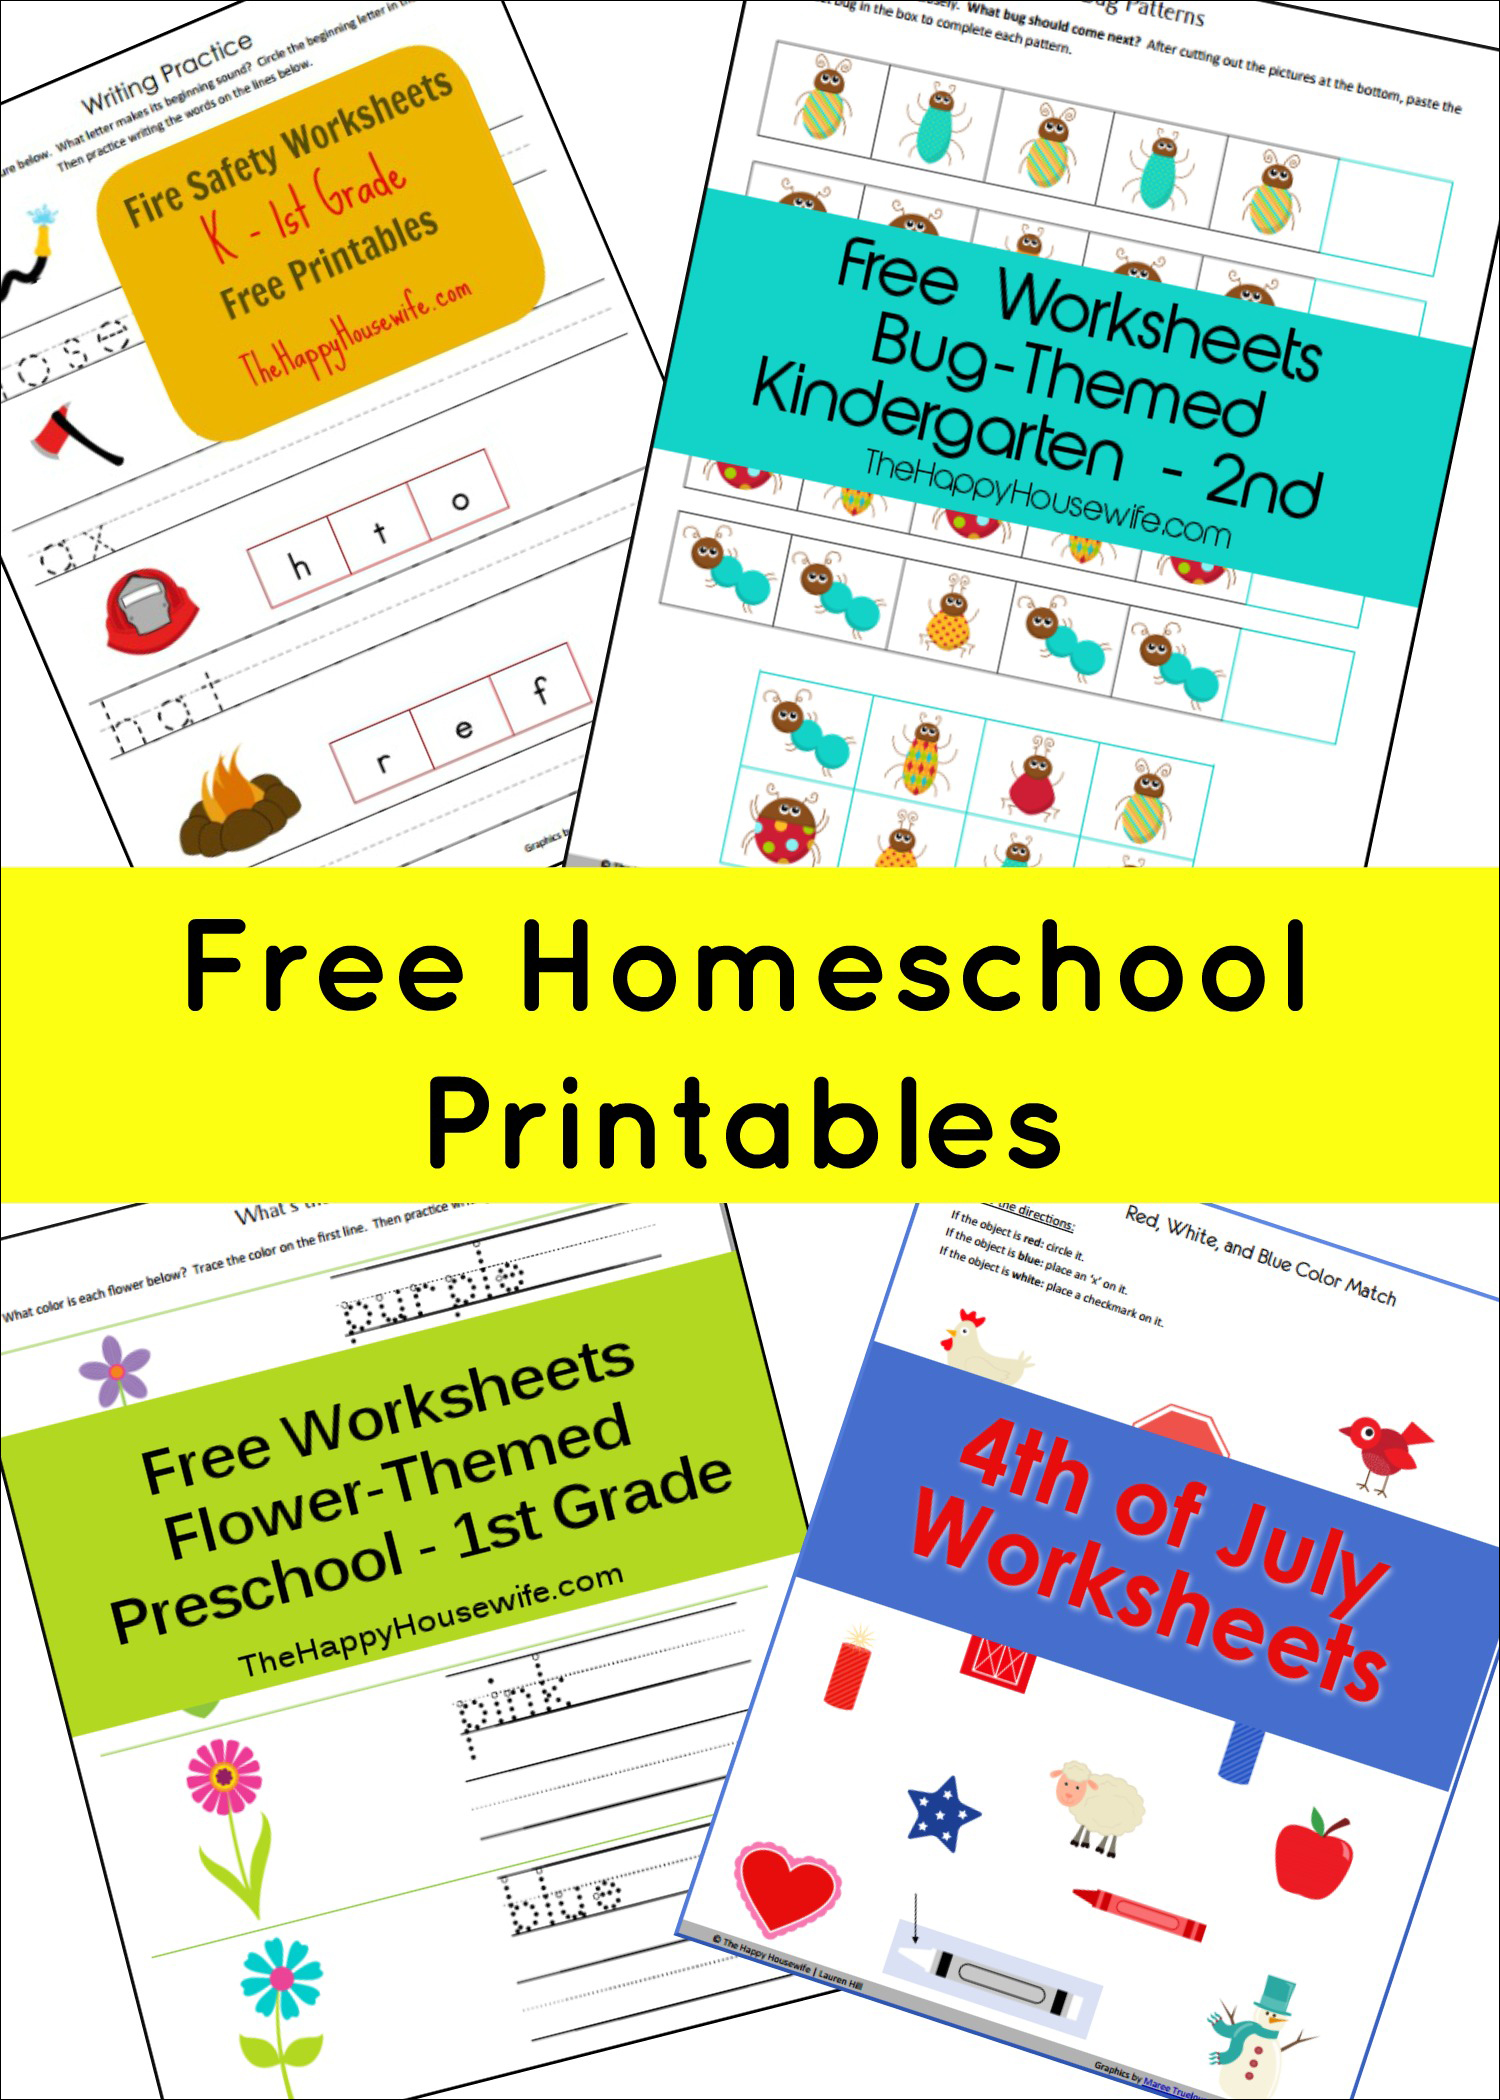 Printable Worksheets Home : Homeschool free printables the happy housewife™ home